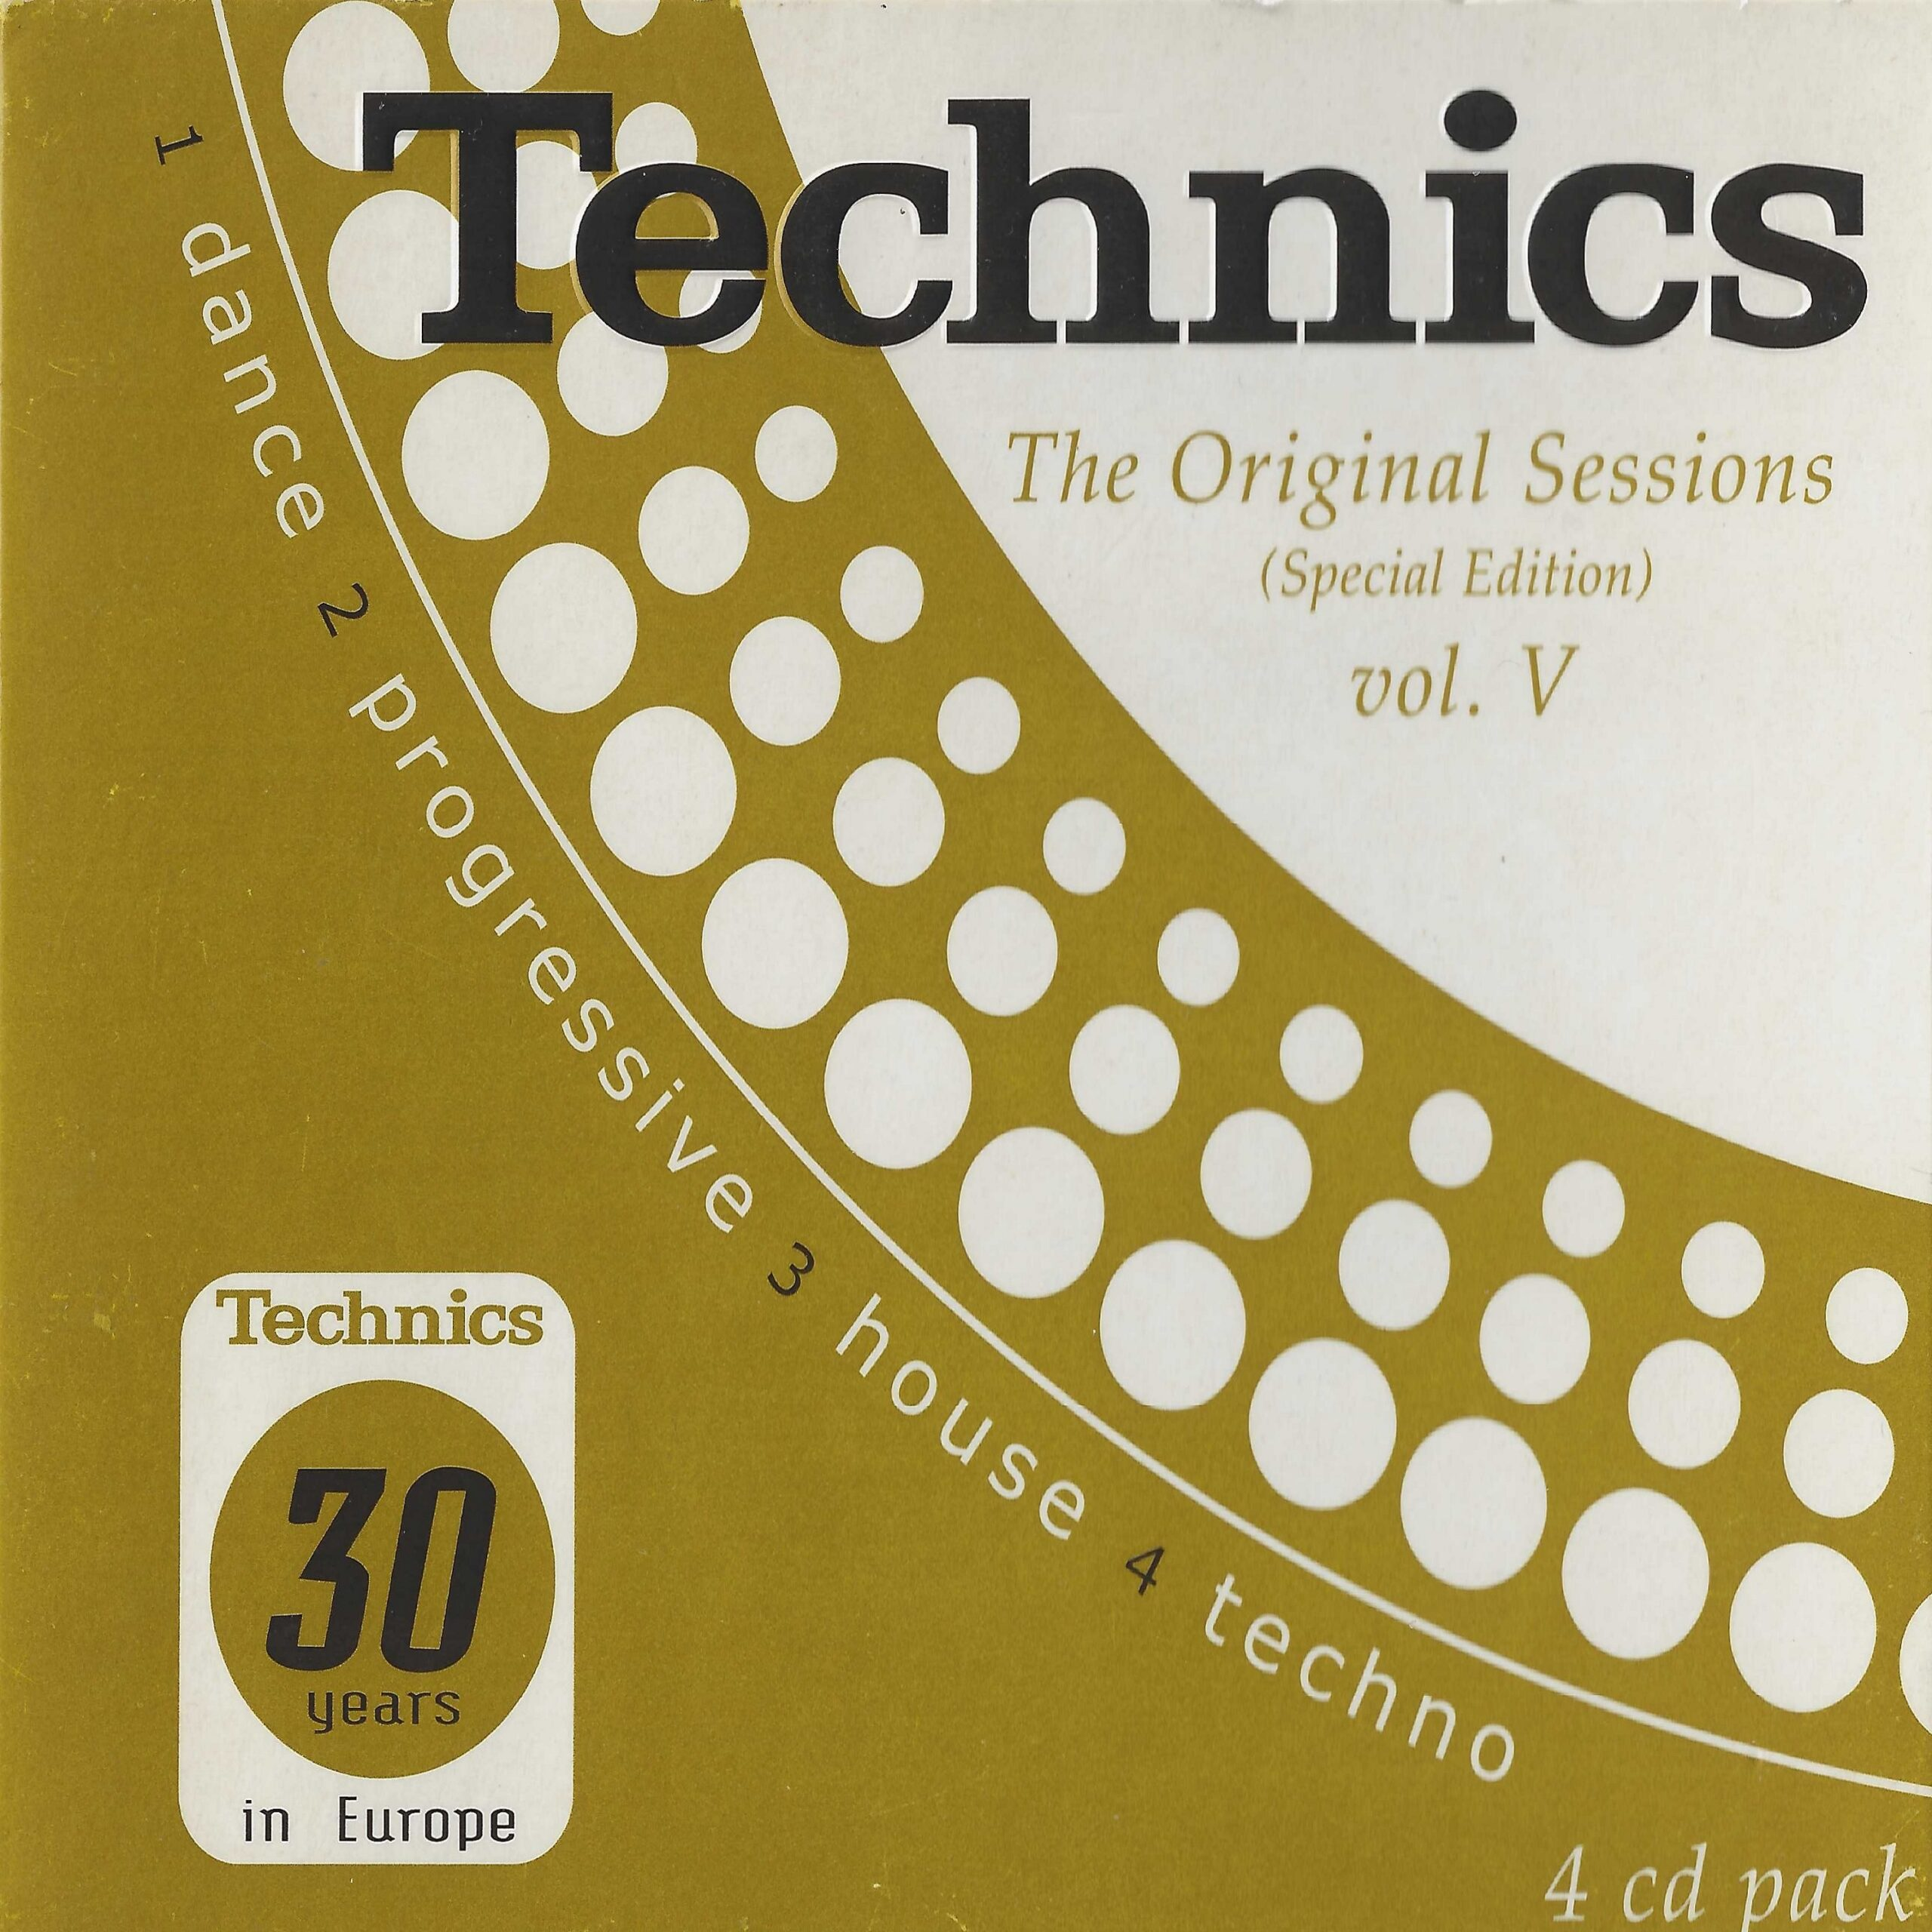 Technics The Original Sessions Vol. 5